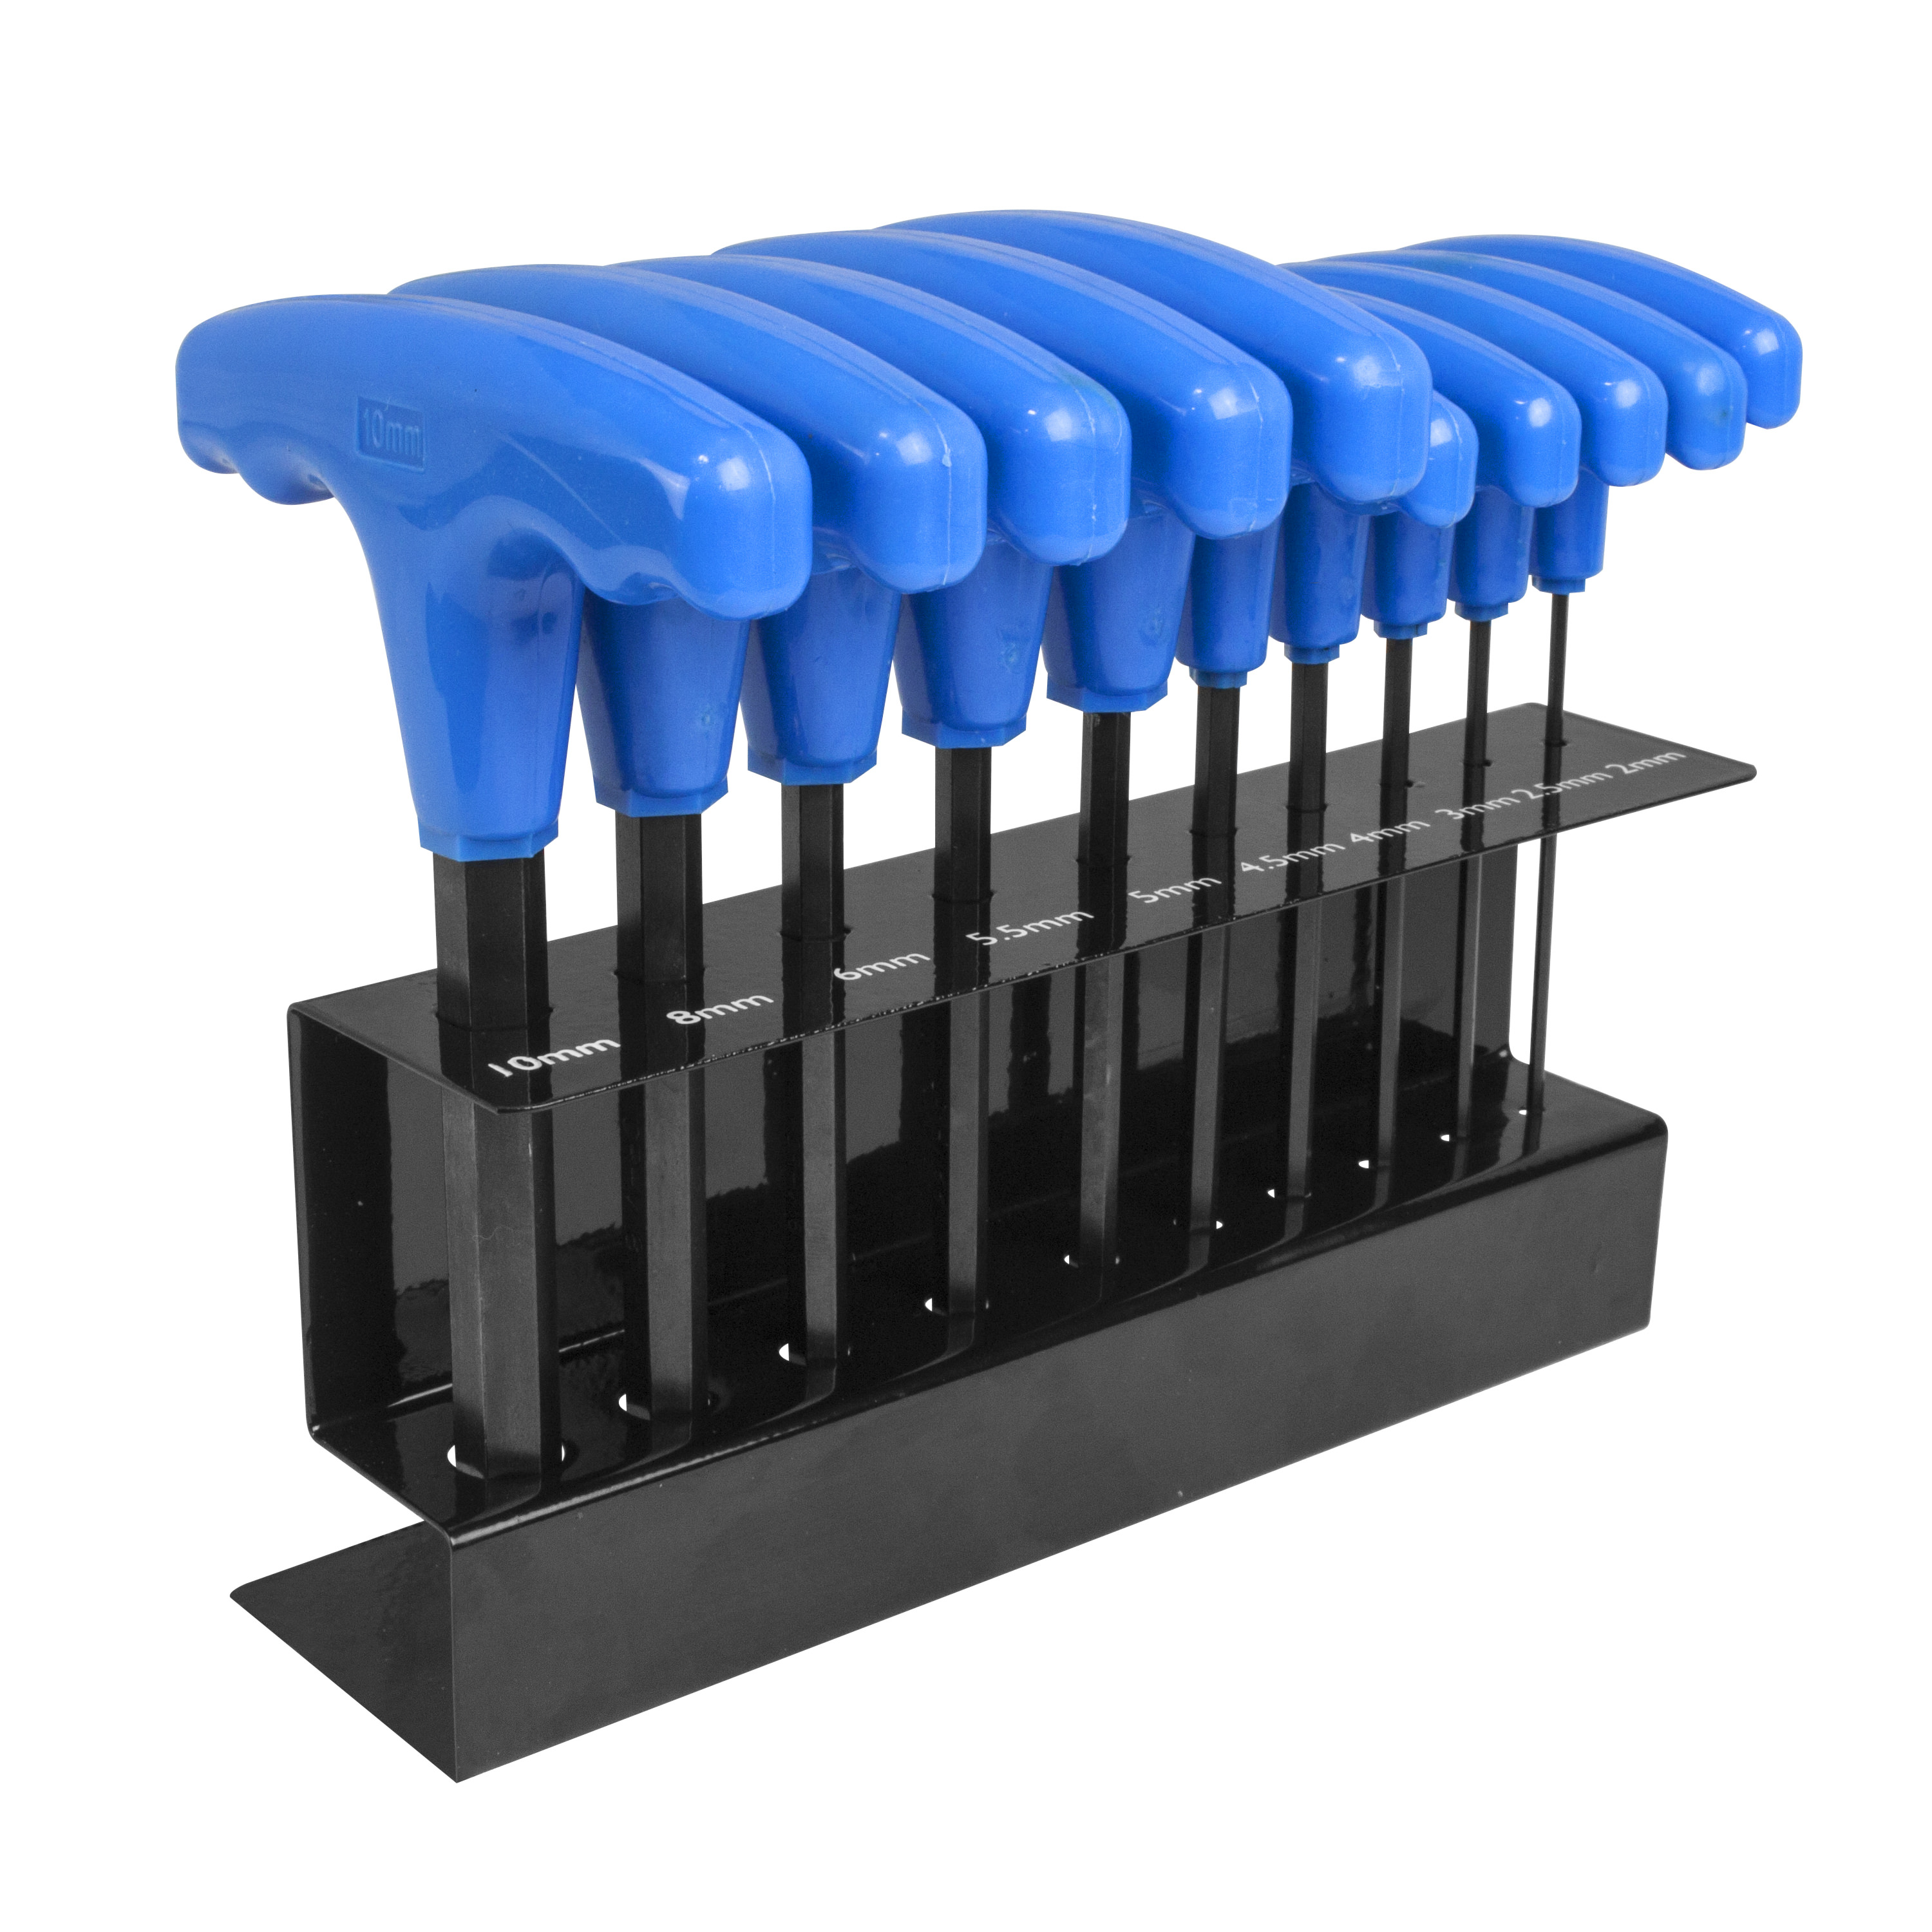 Freeman 10 Piece T-Handle Metric Hex Wrench Set with Metal Stand